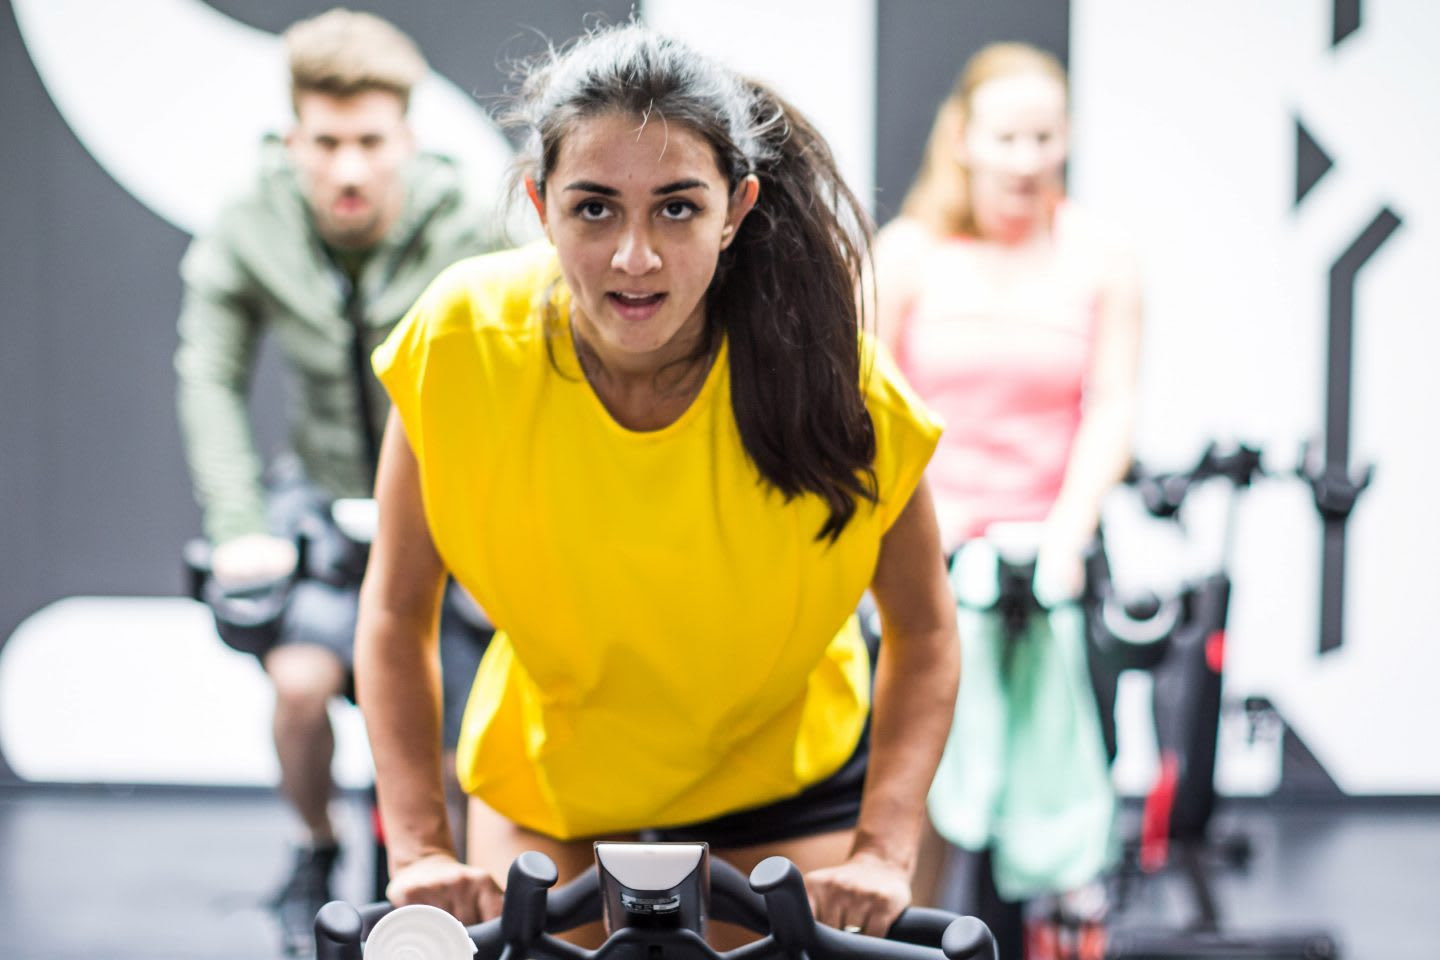 A girl wearing a vibrant yellow tshirt is motivated in an indoor cycling class. goal-setting, success, GamePlan A, confidence